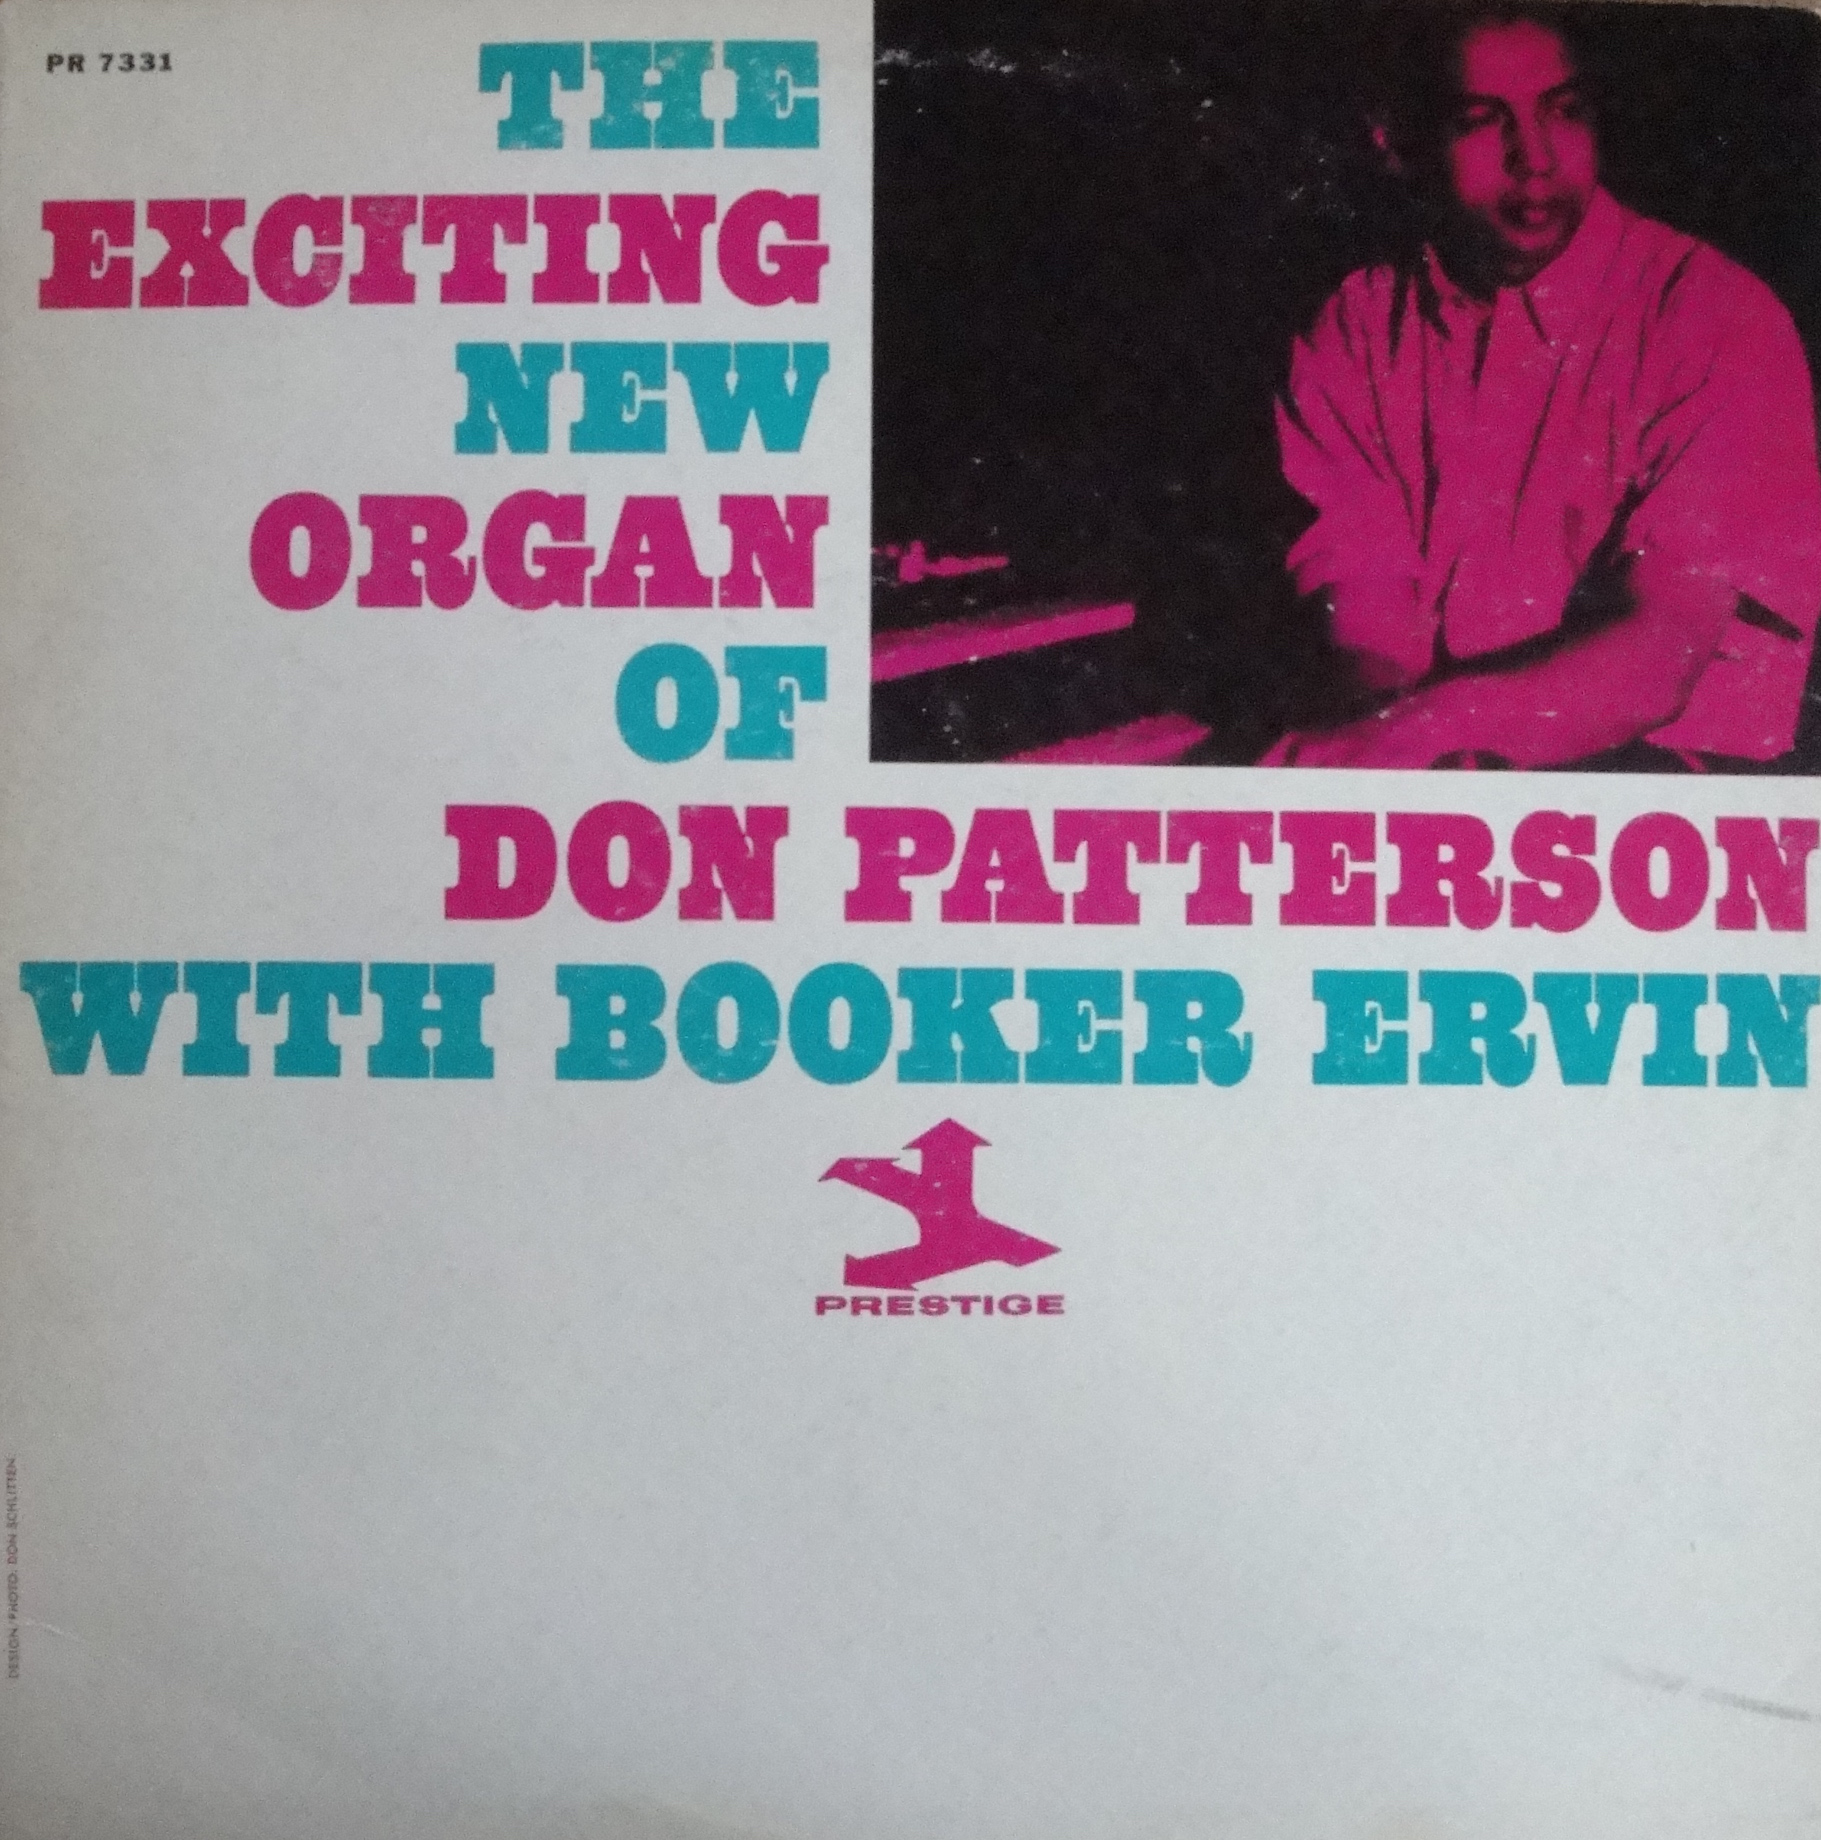 Don Patterson - The Exciting New Organ